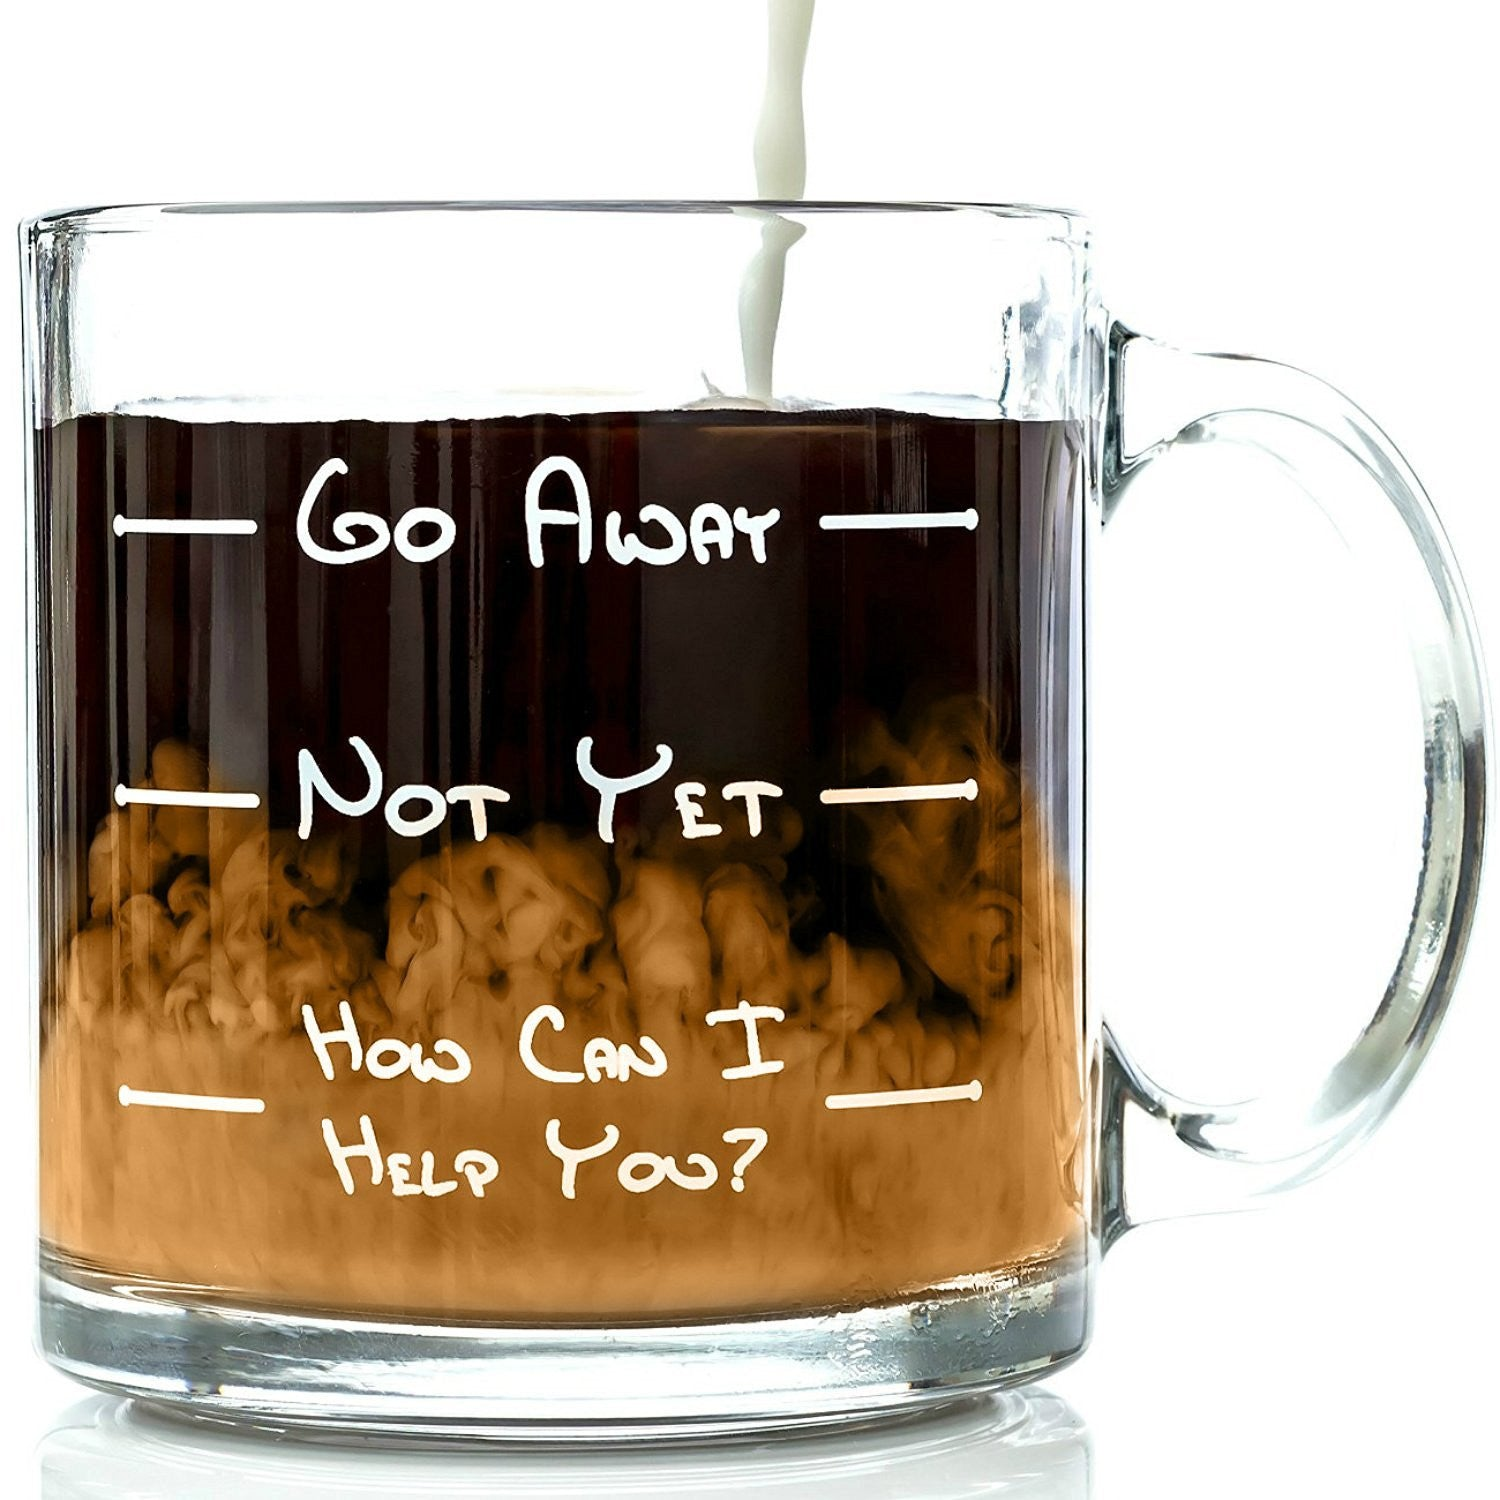 Hilarious 'Go-Away' Coffee Mug - Keeps People Laughing All Morning!